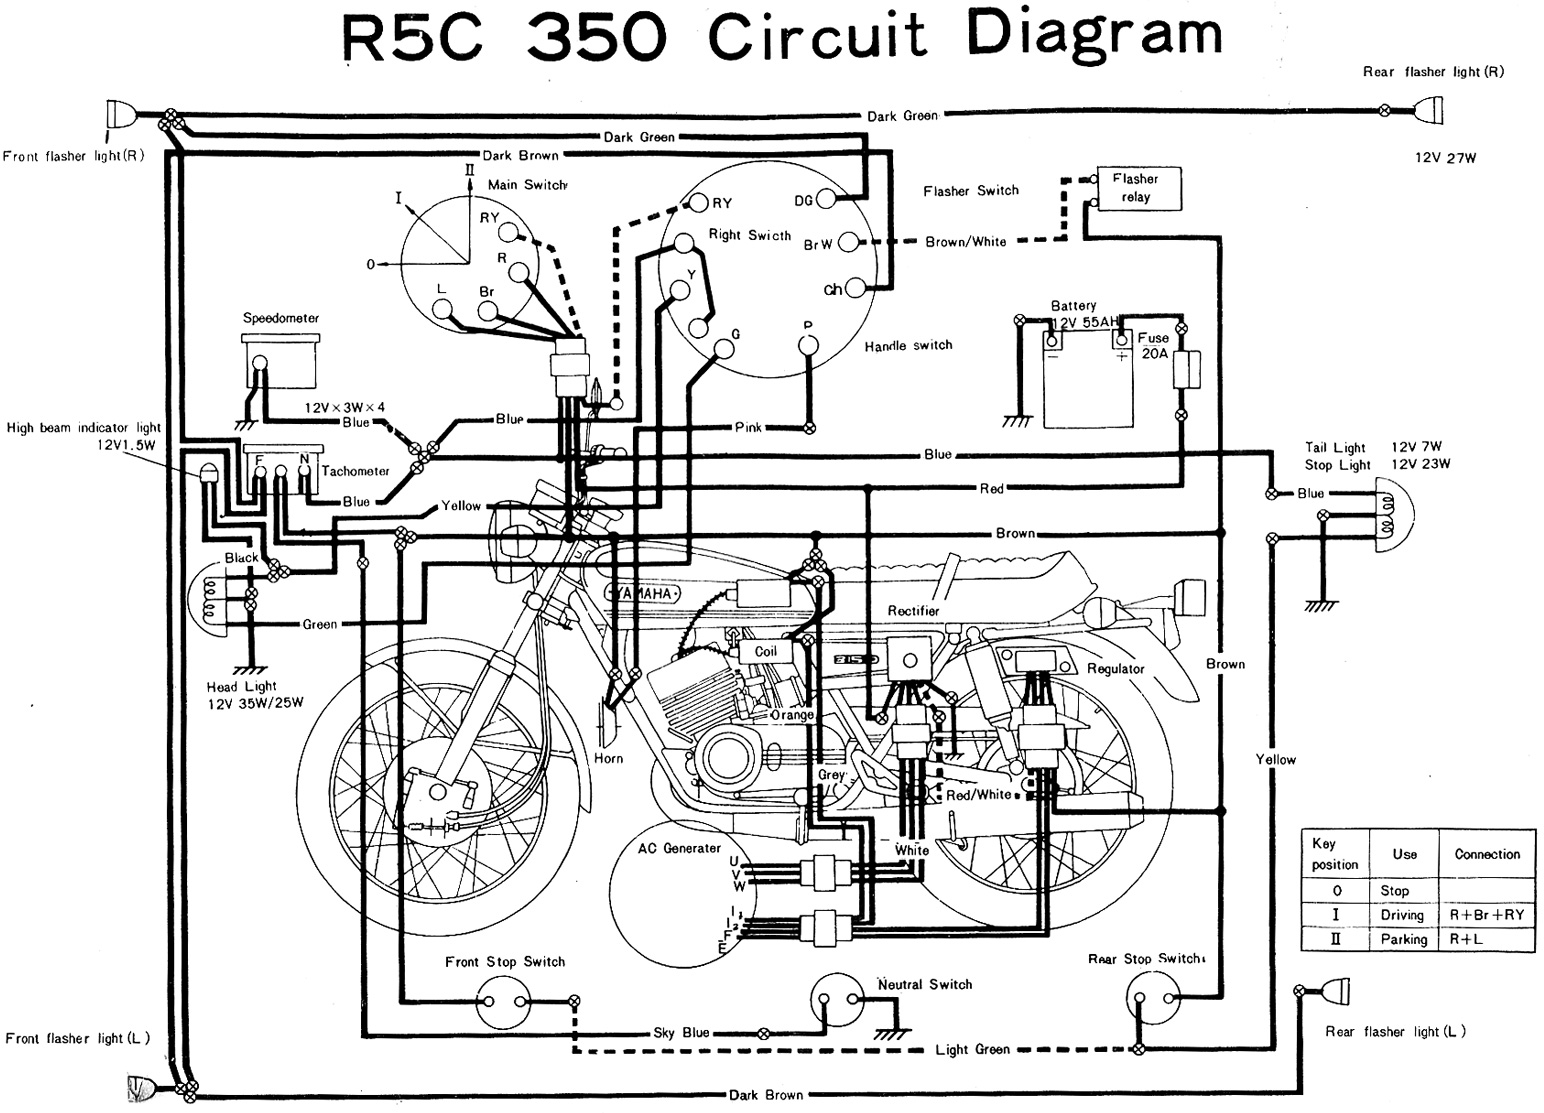 1970-72 YAMAHA R5: May 2005